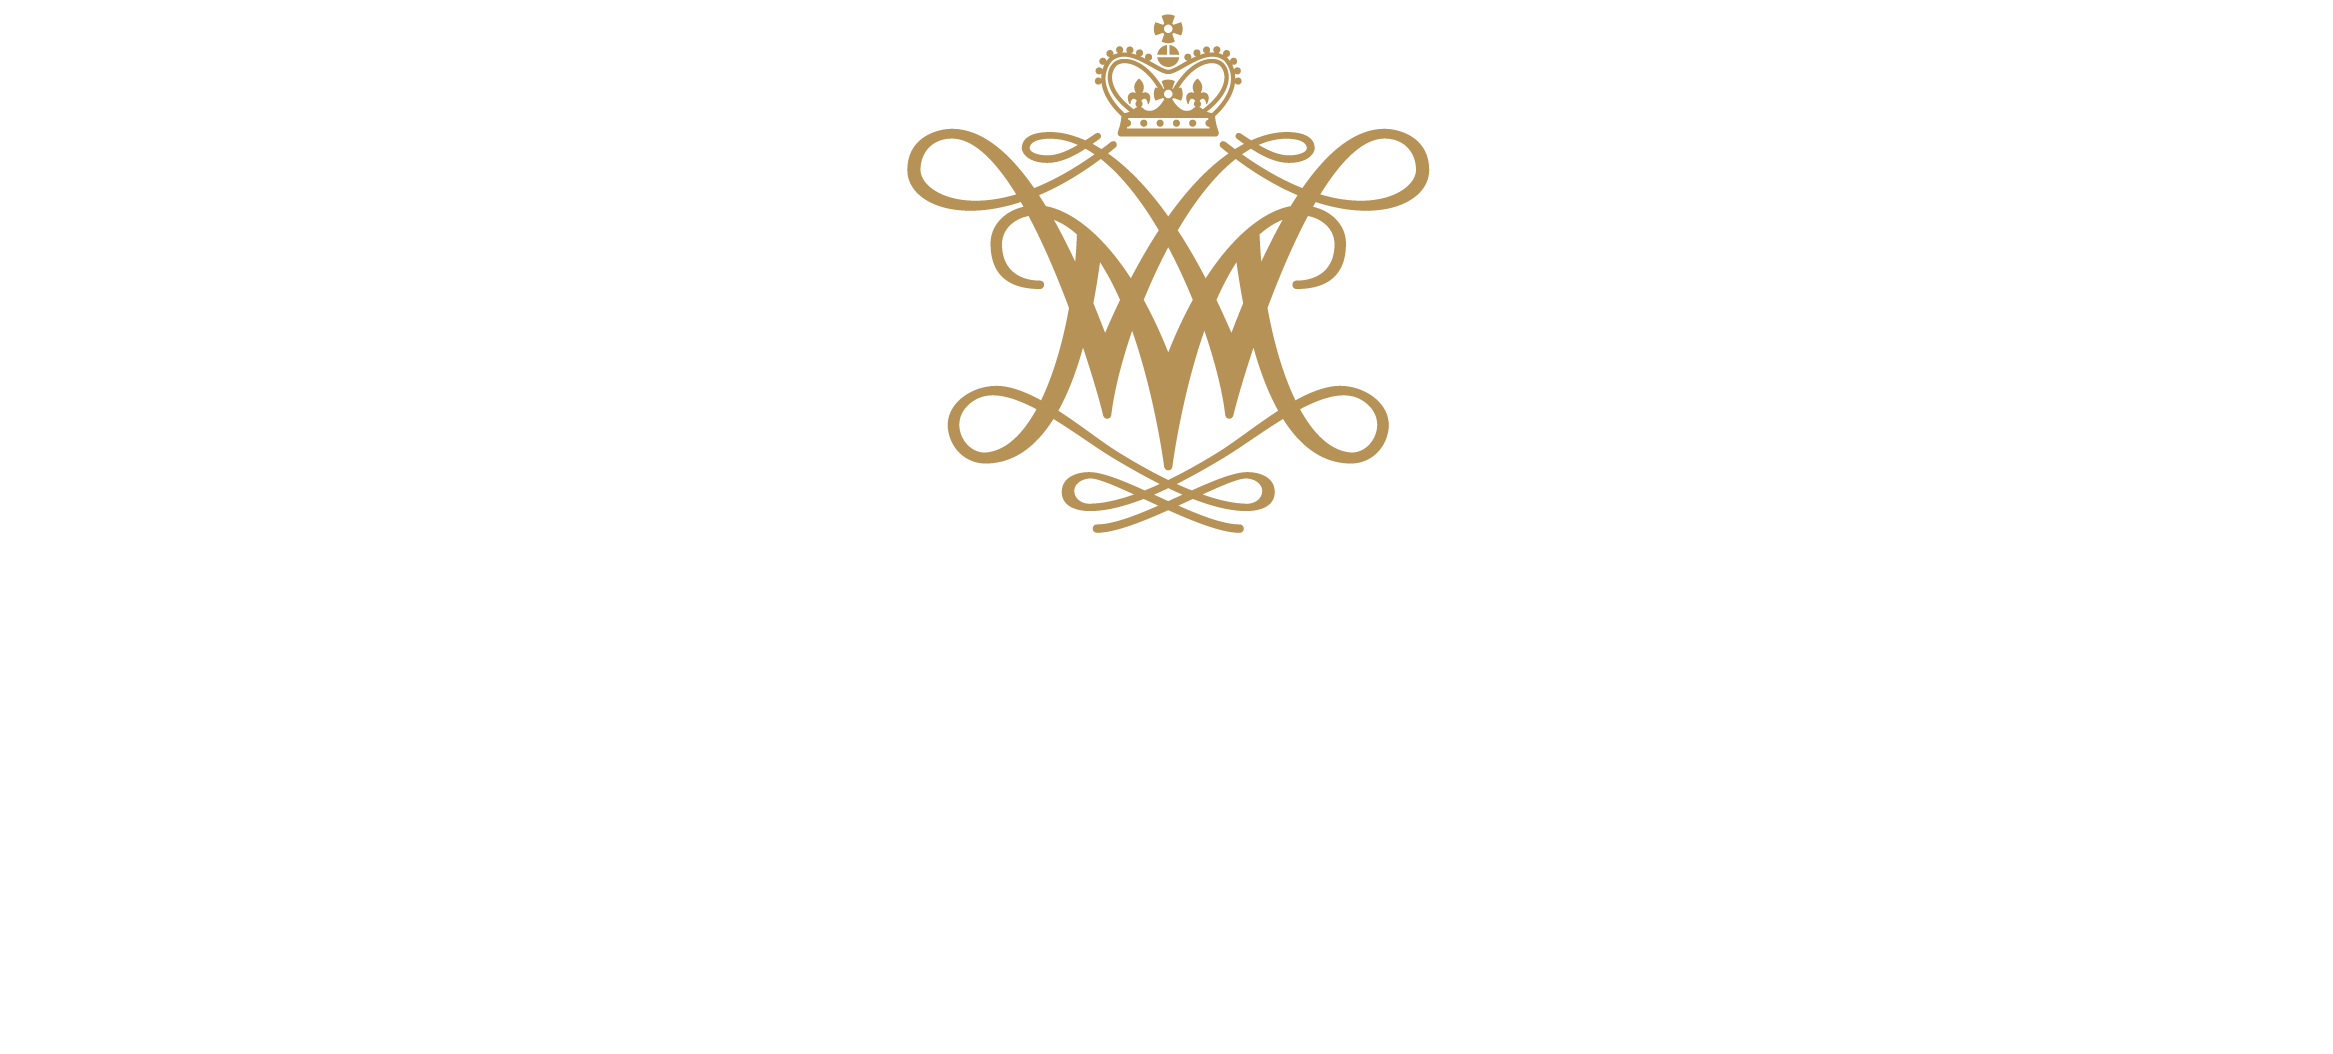 William & Mary logo